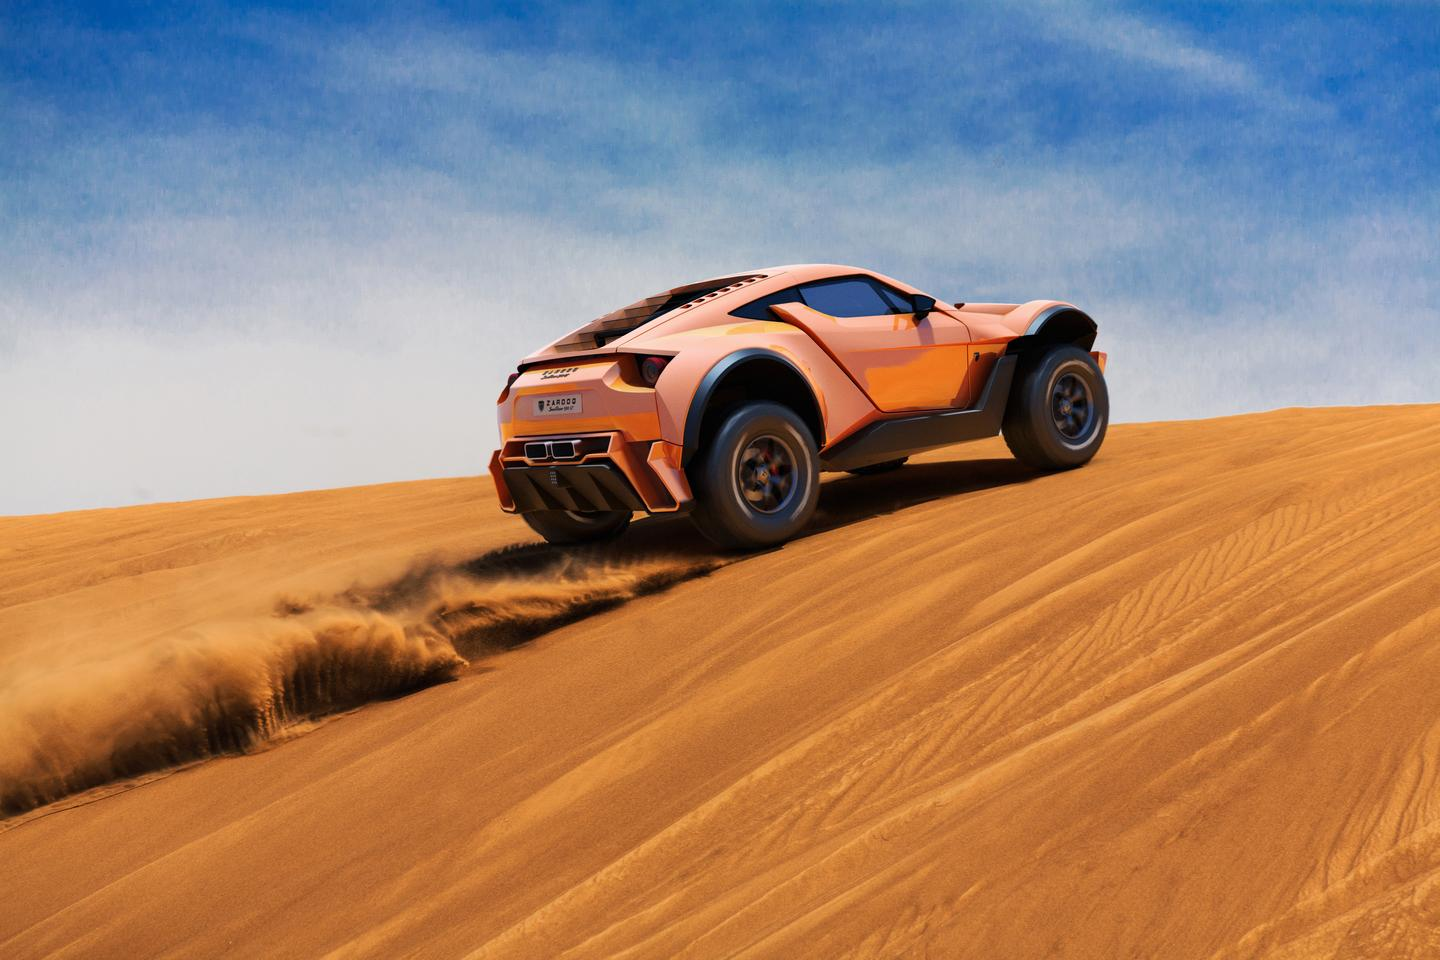 Zarooq says it is ready to start production on its SandRacer 500 GT